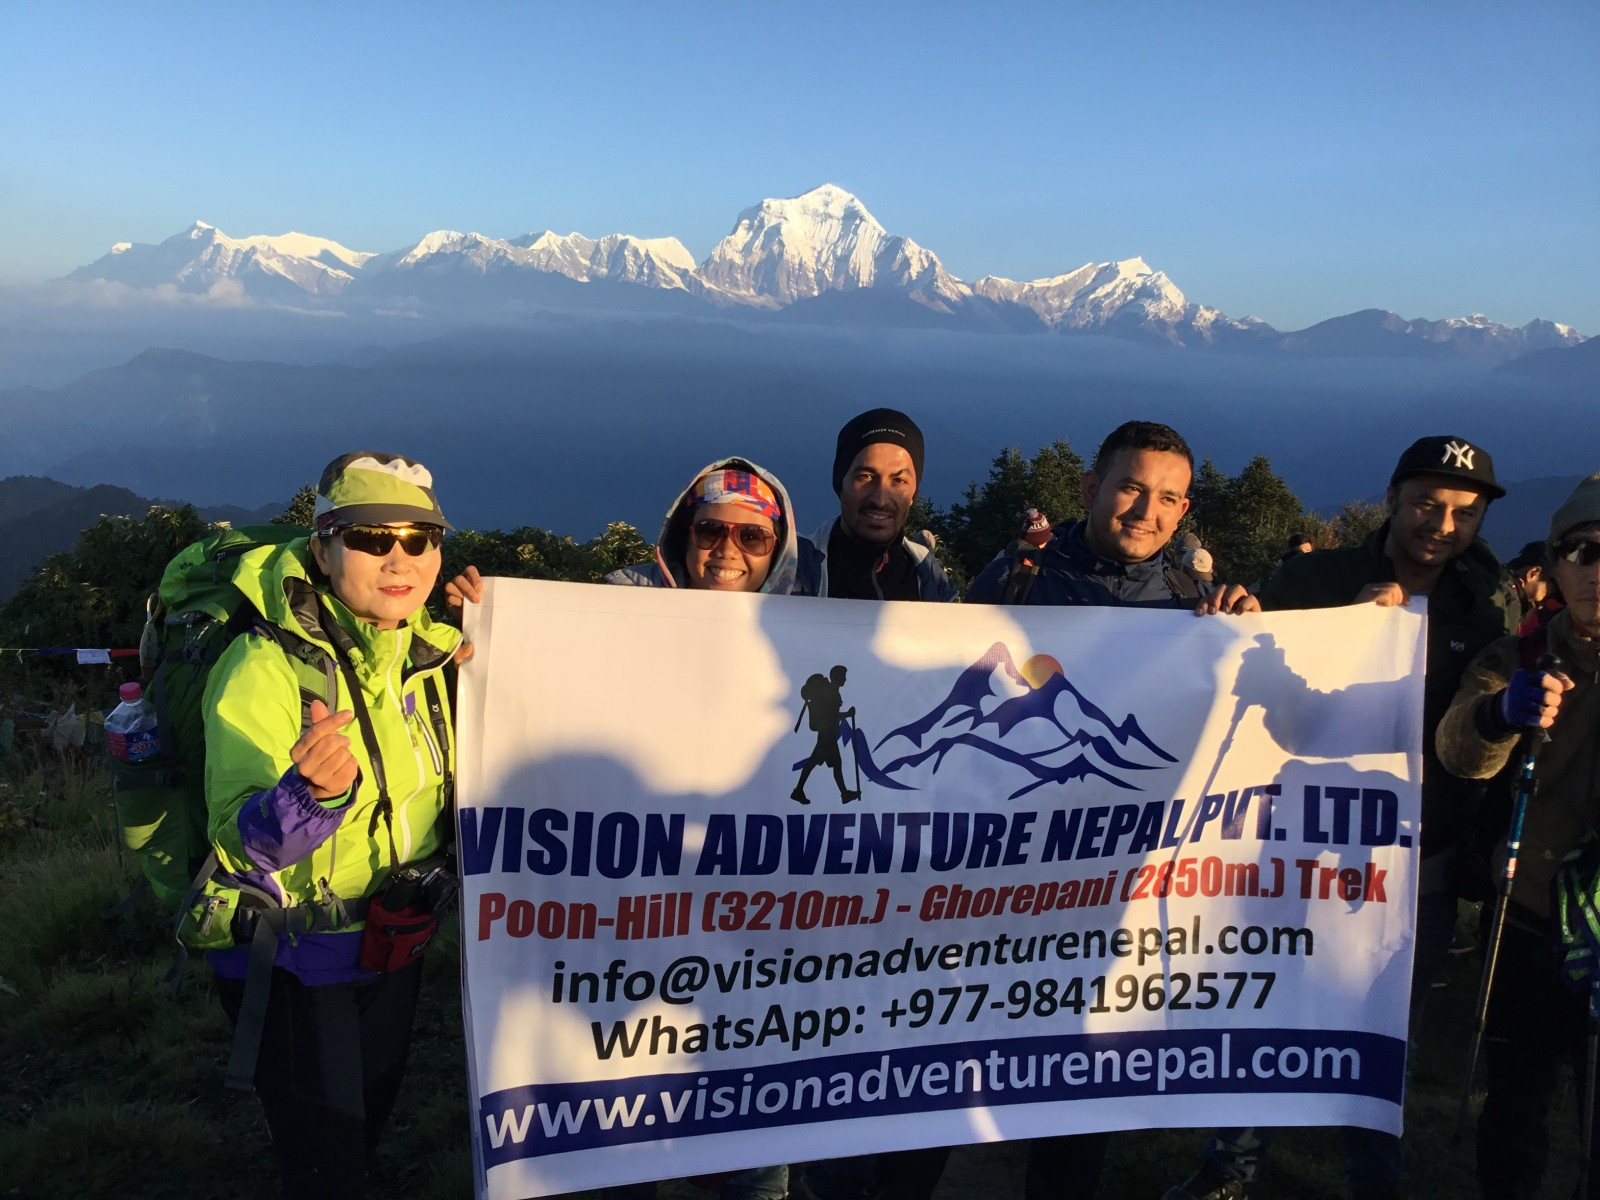 Ghorepani Poonhill Trek $775 Per Person